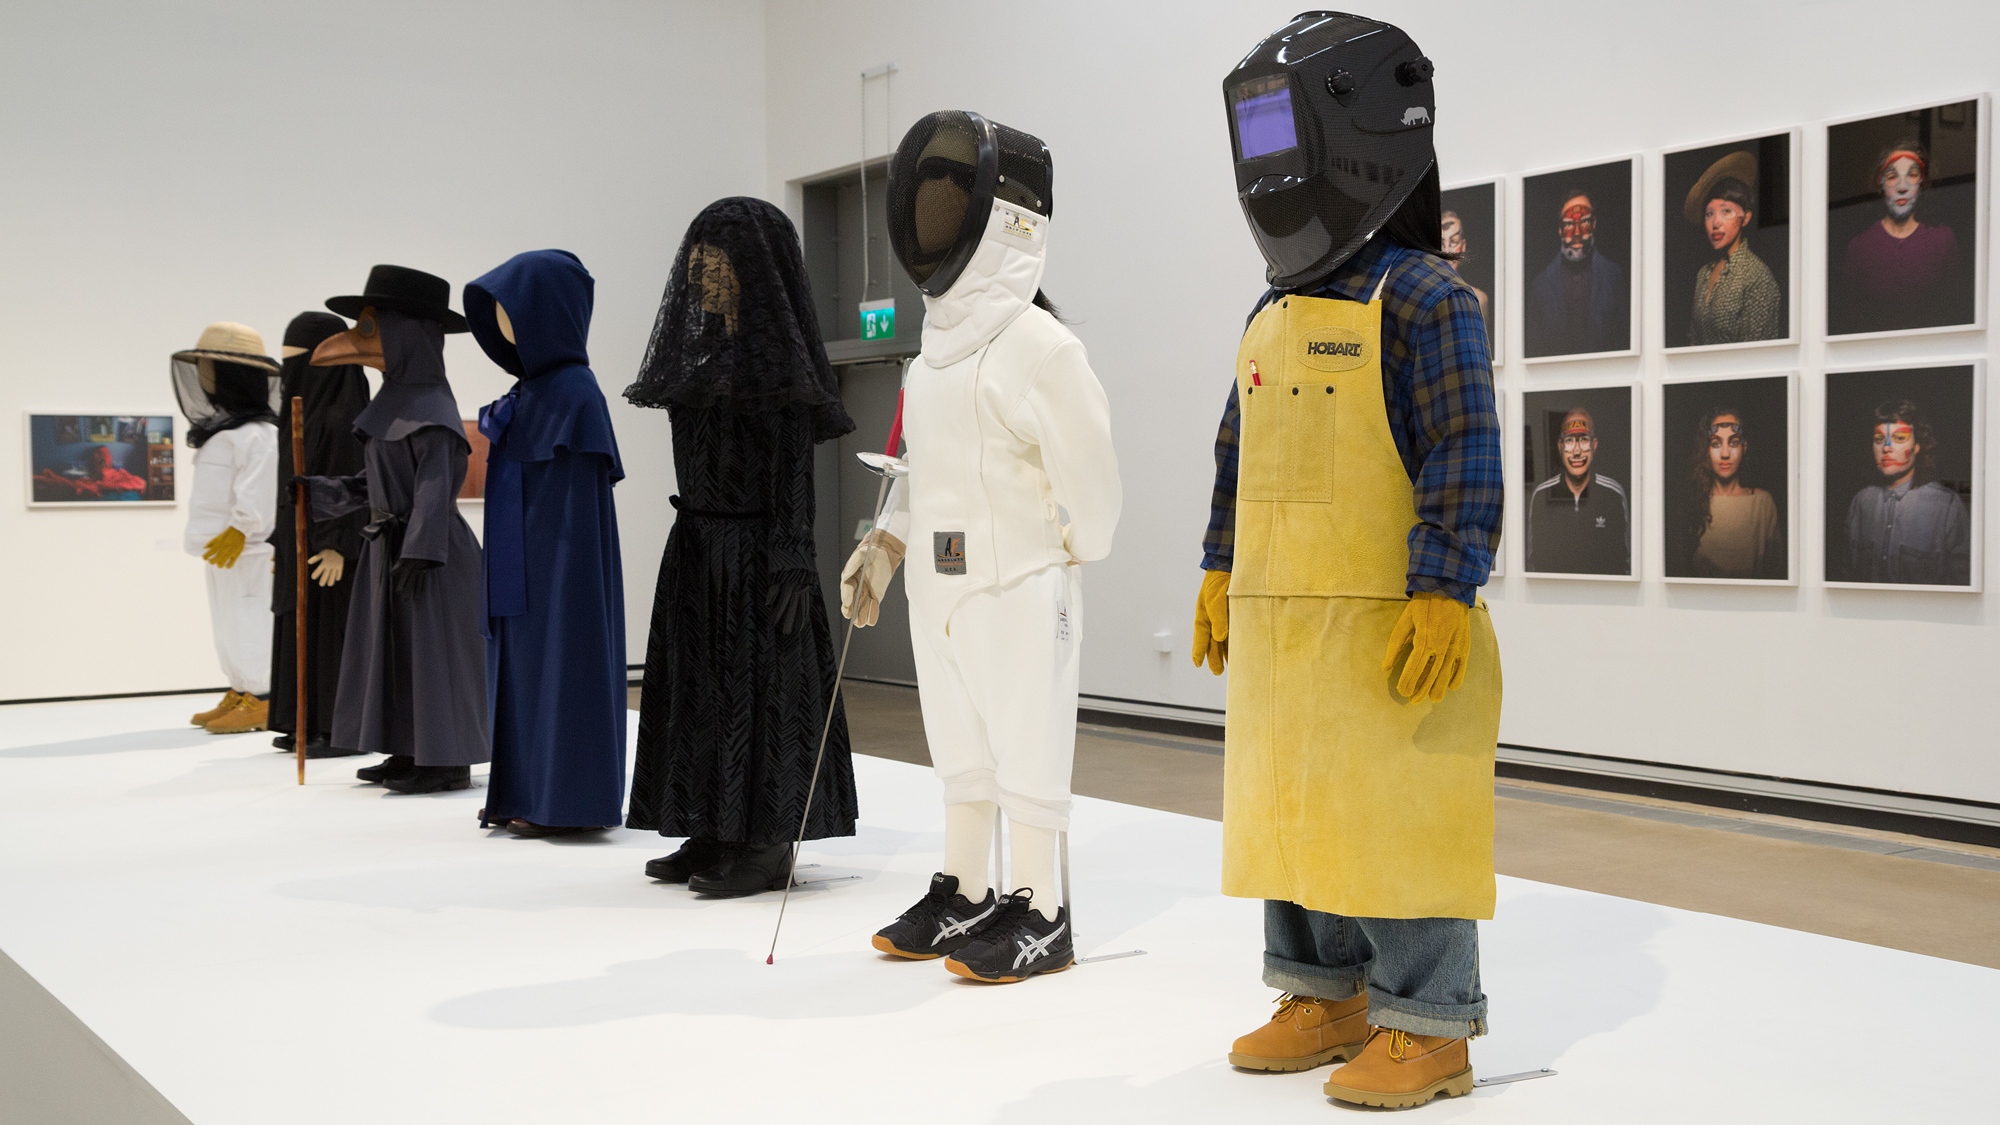 Installation view of Uniforms (2015)